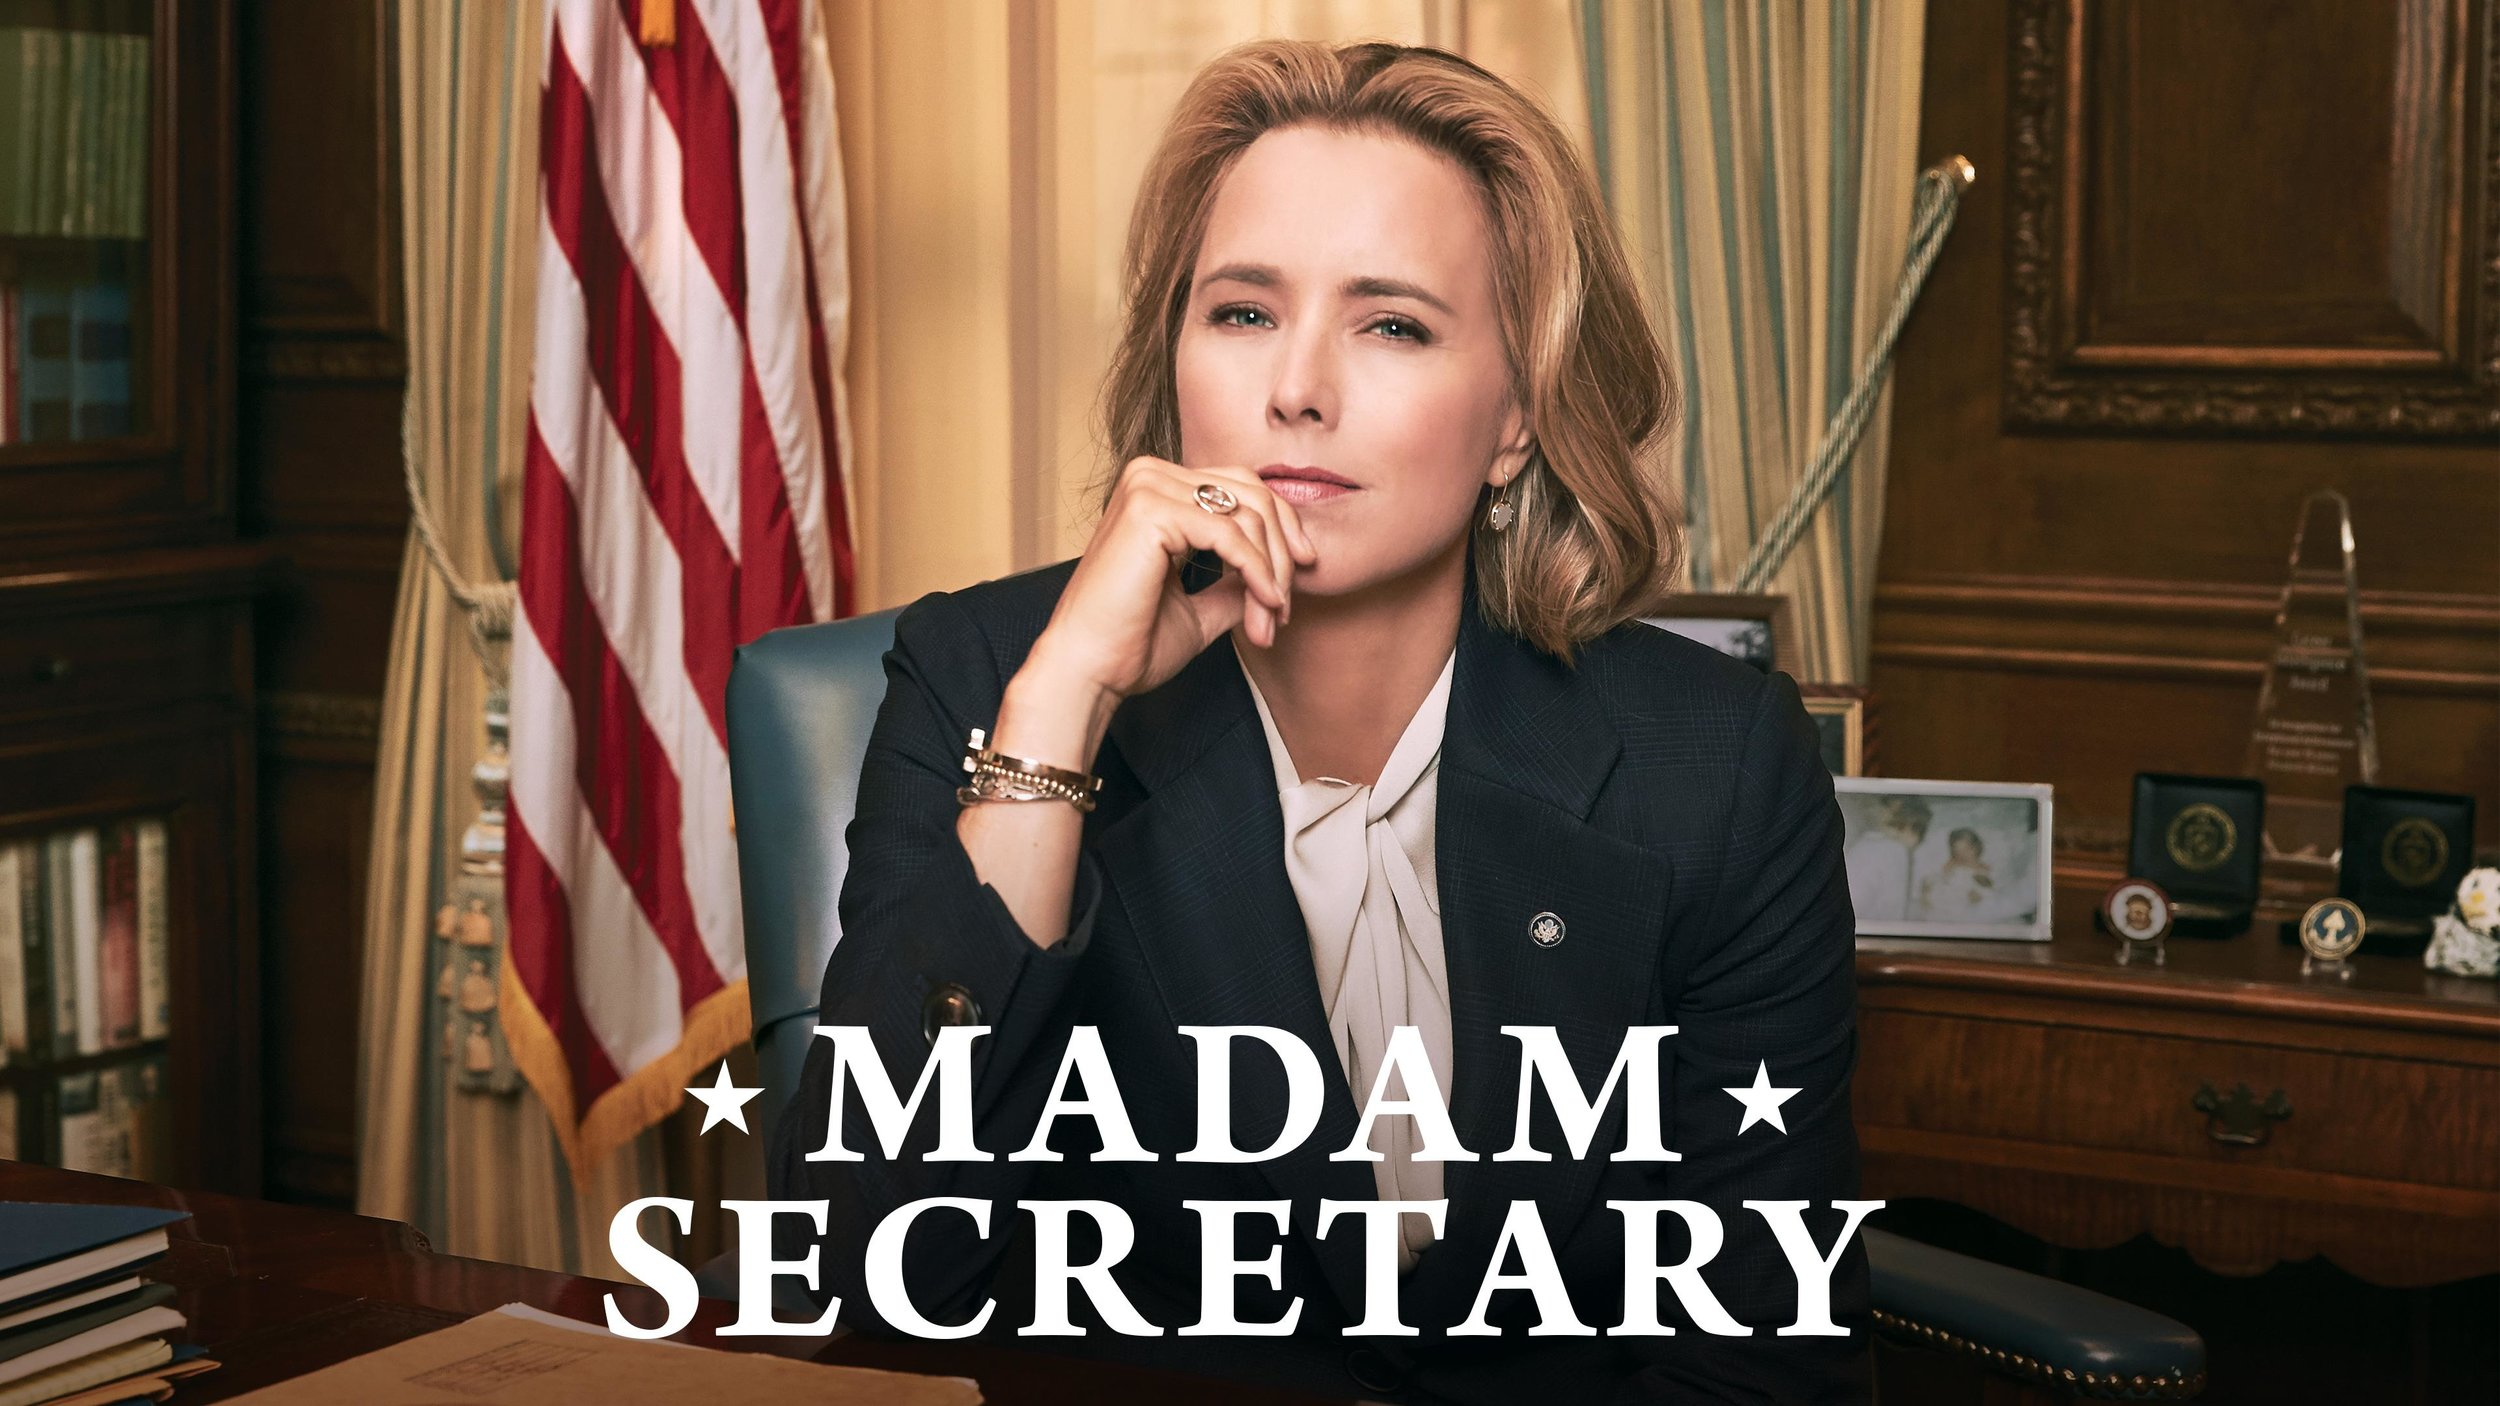 Jeremy - I'm loving the TV show Madam Secretary. We started watching it last year, and a new season just came out on Netflix in June that we've been working through. It's well written and entertaining.